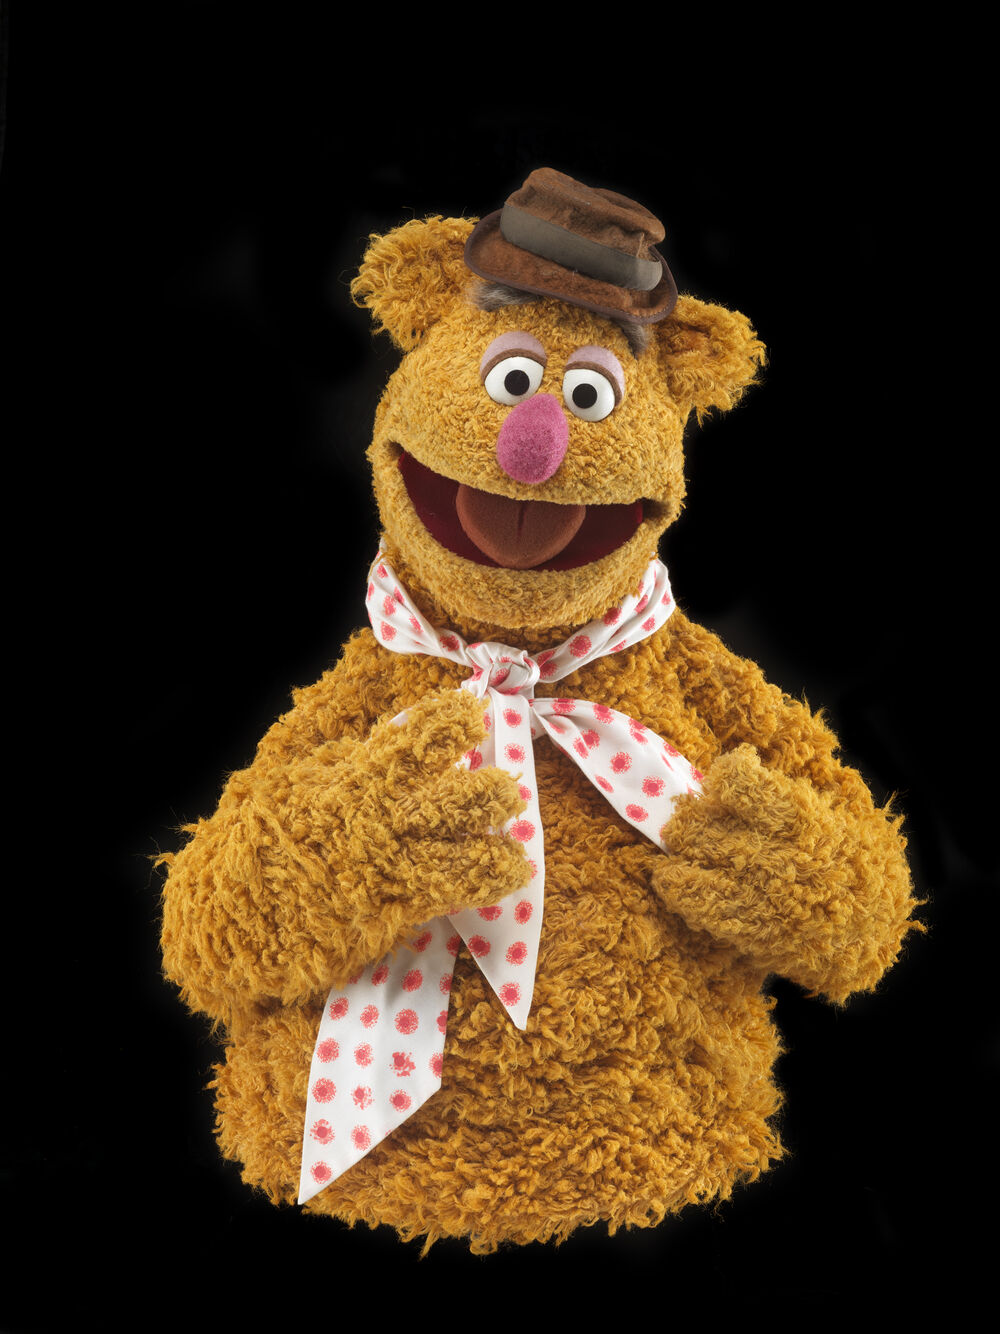 The Fozzie Bear puppet, created by Jim Henson, wearing a hat and polka dot bow tie.